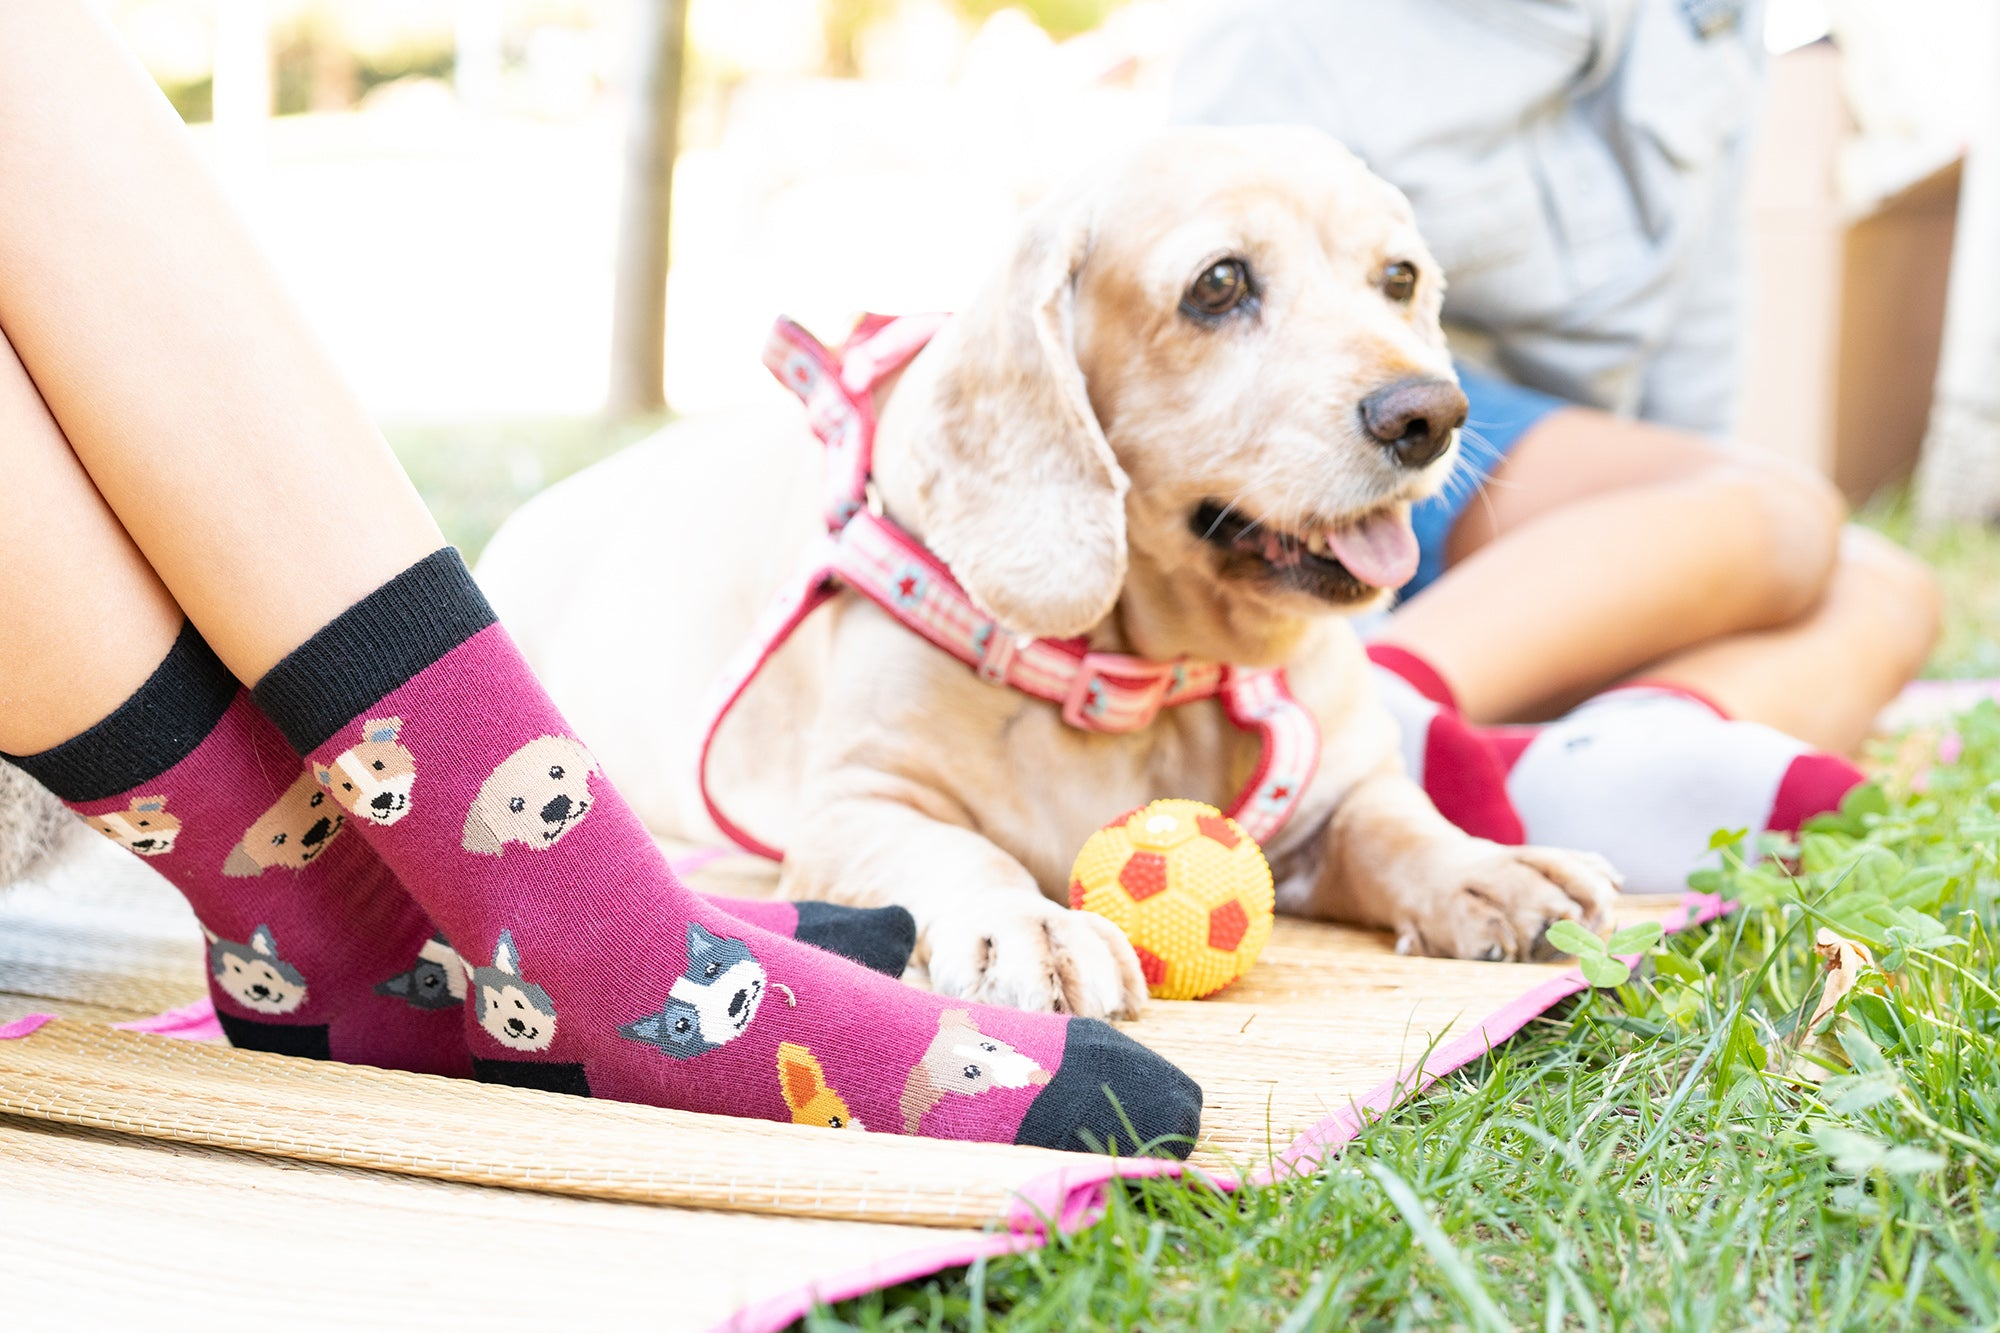 Kids Cute Dogs Socks